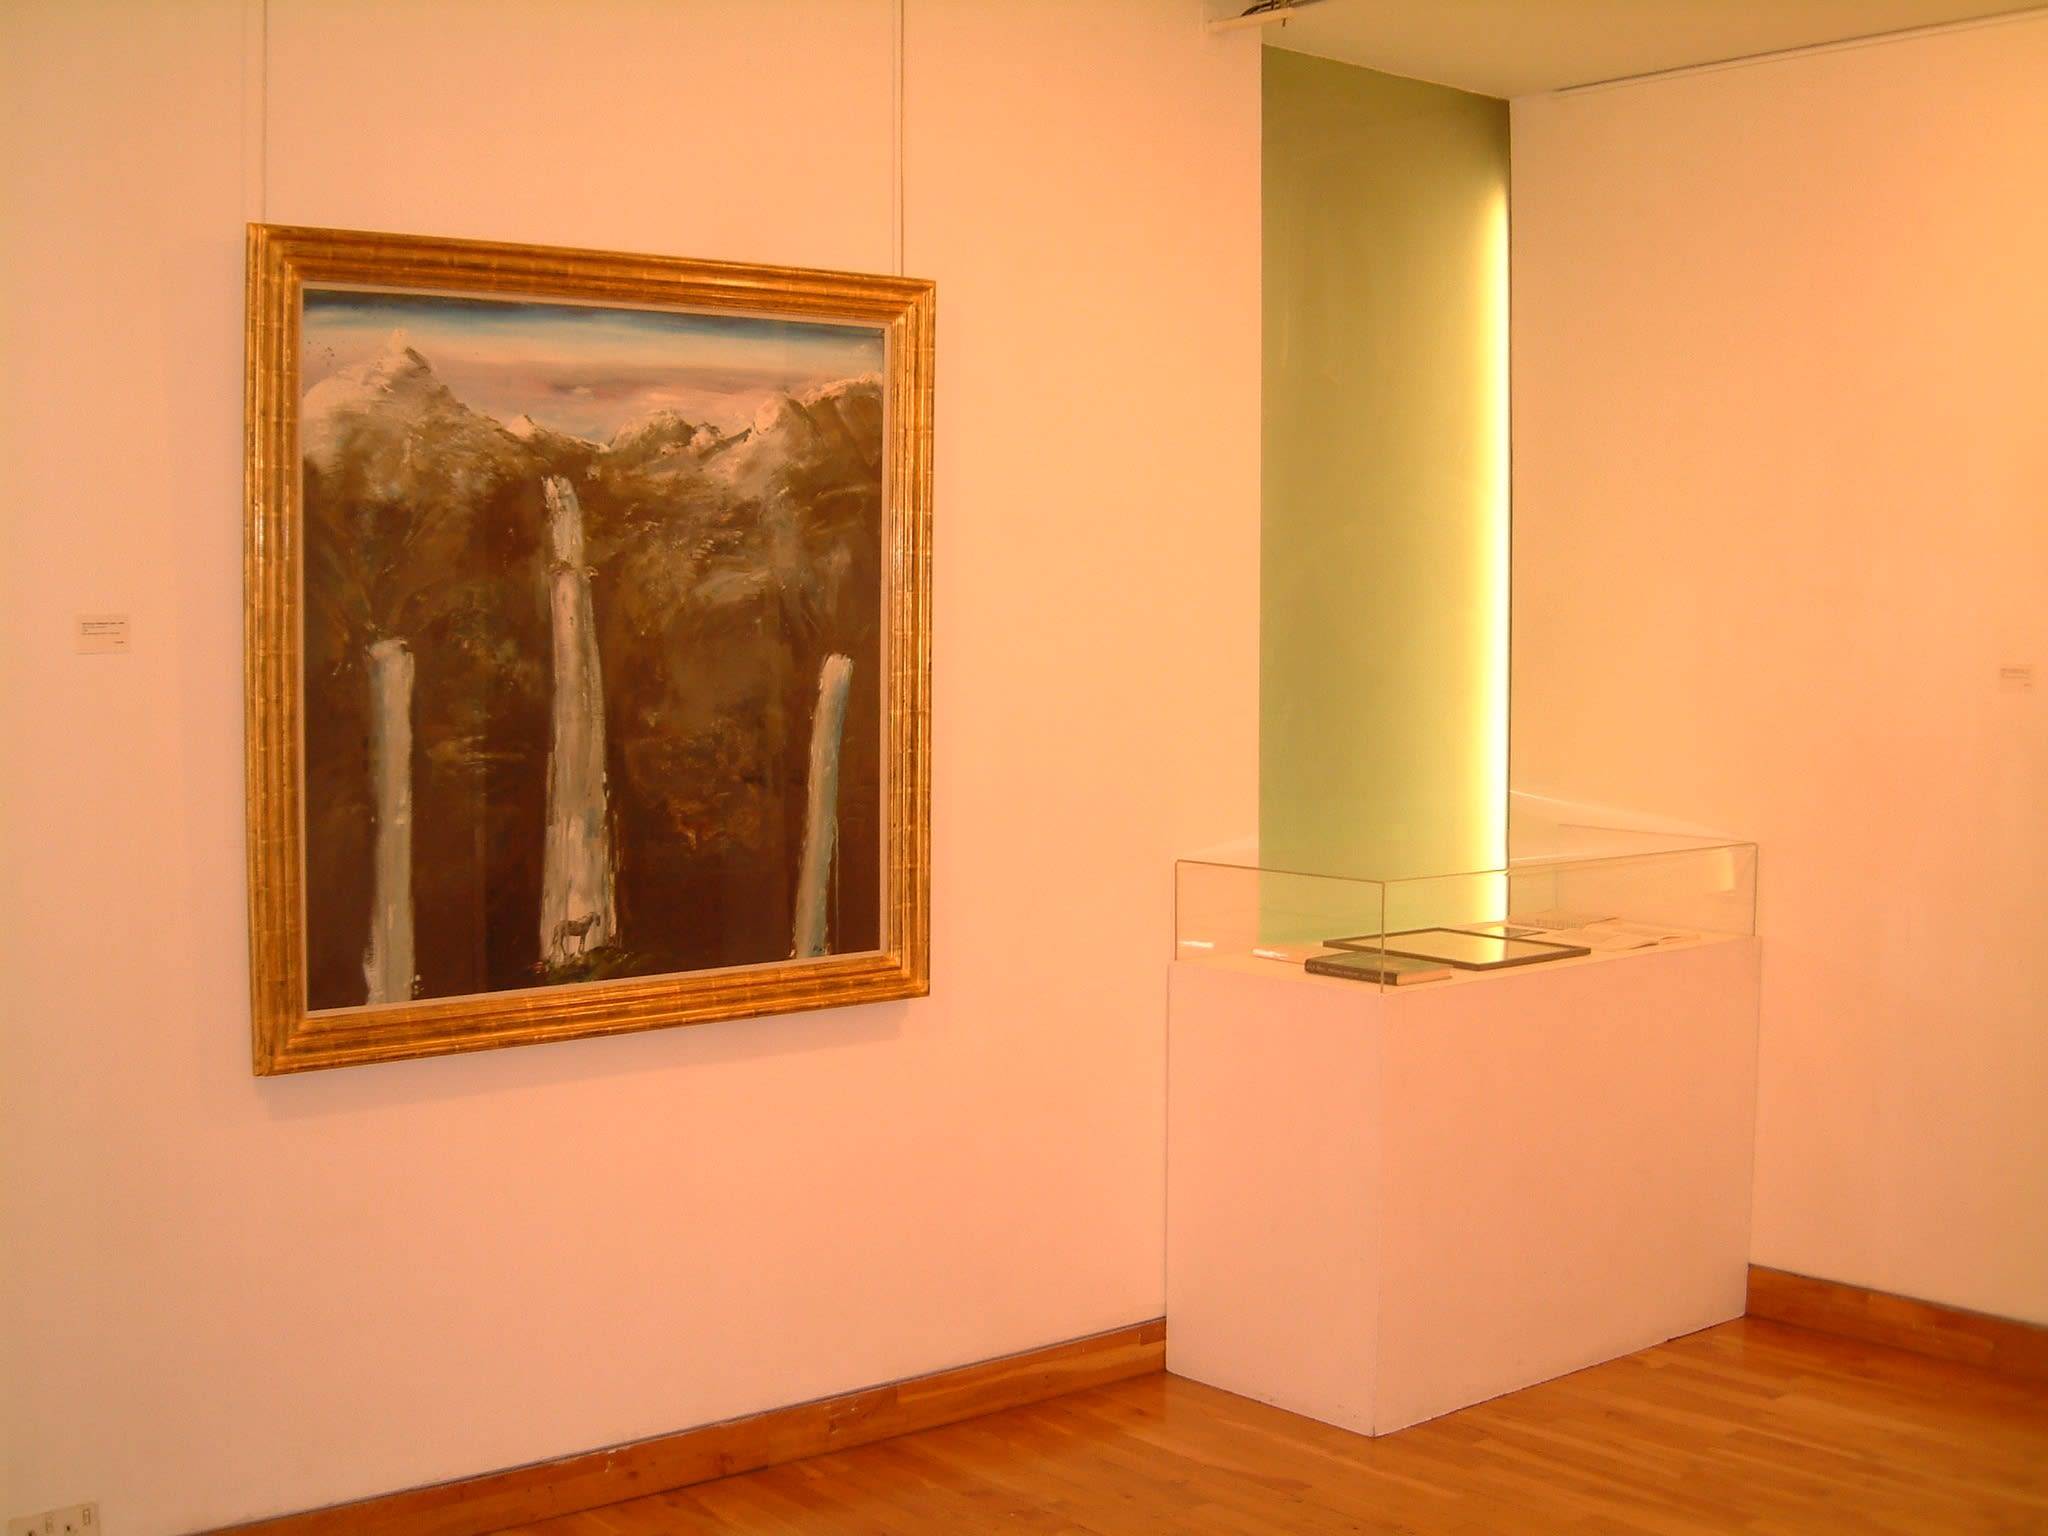 """<span class=""""link fancybox-details-link""""><a href=""""/exhibitions/116/works/image_standalone488/"""">View Detail Page</a></span><p>MICHAEL WISHART   THE LAST WORKS   09 NOV - 20 DEC 2005   Installation View</p>"""